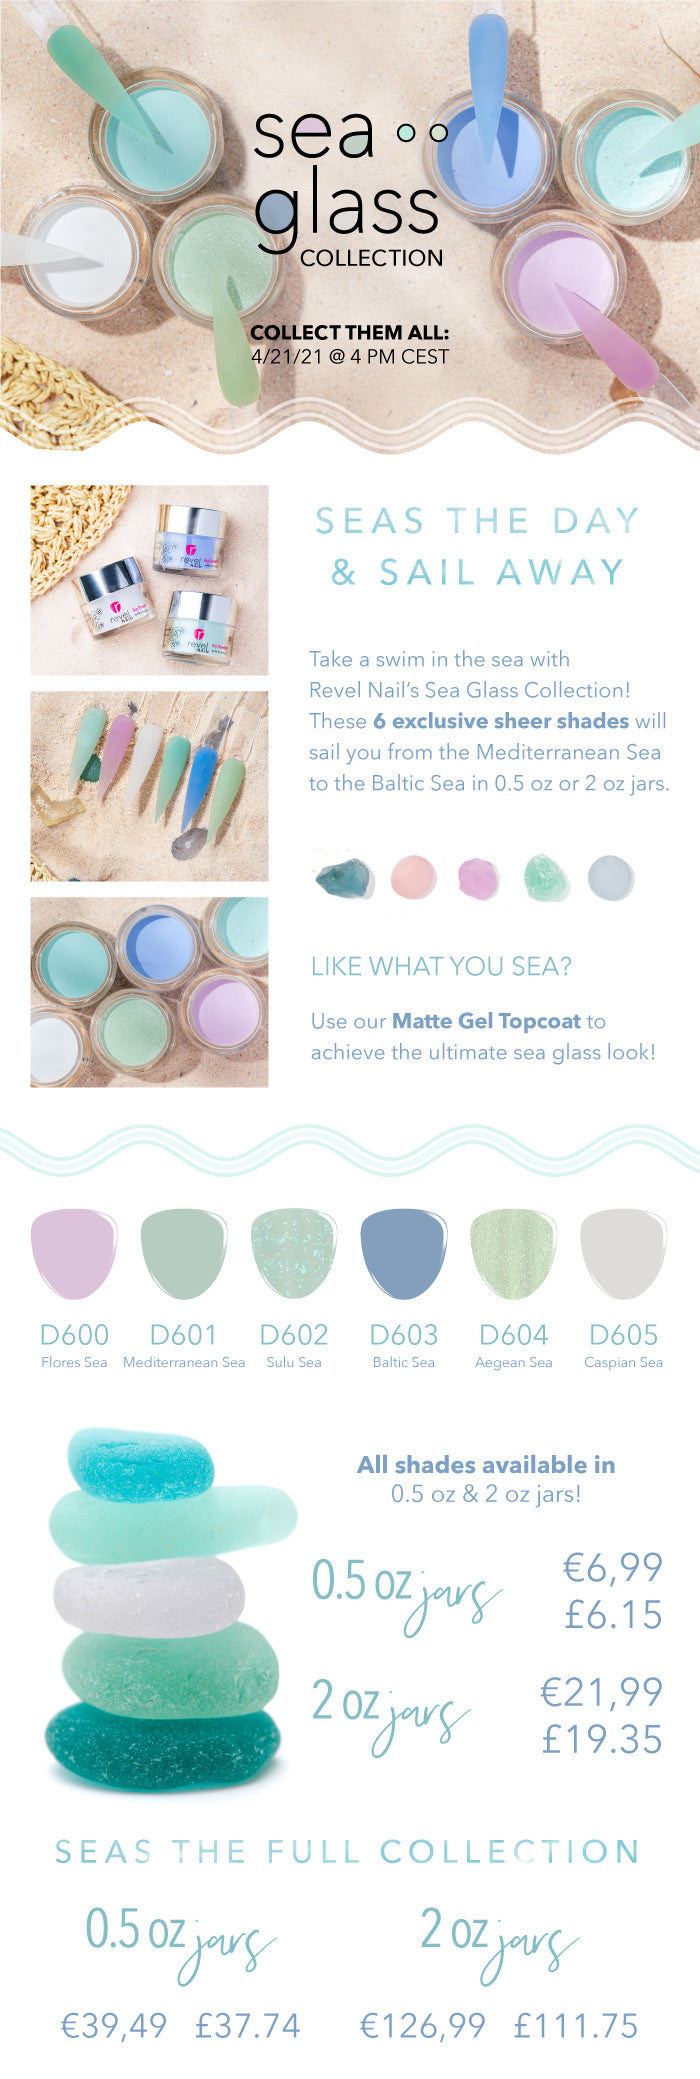 Sea Glass Collection | Ocean Jewelry on your finger tips | Revel Nail Dip Powder